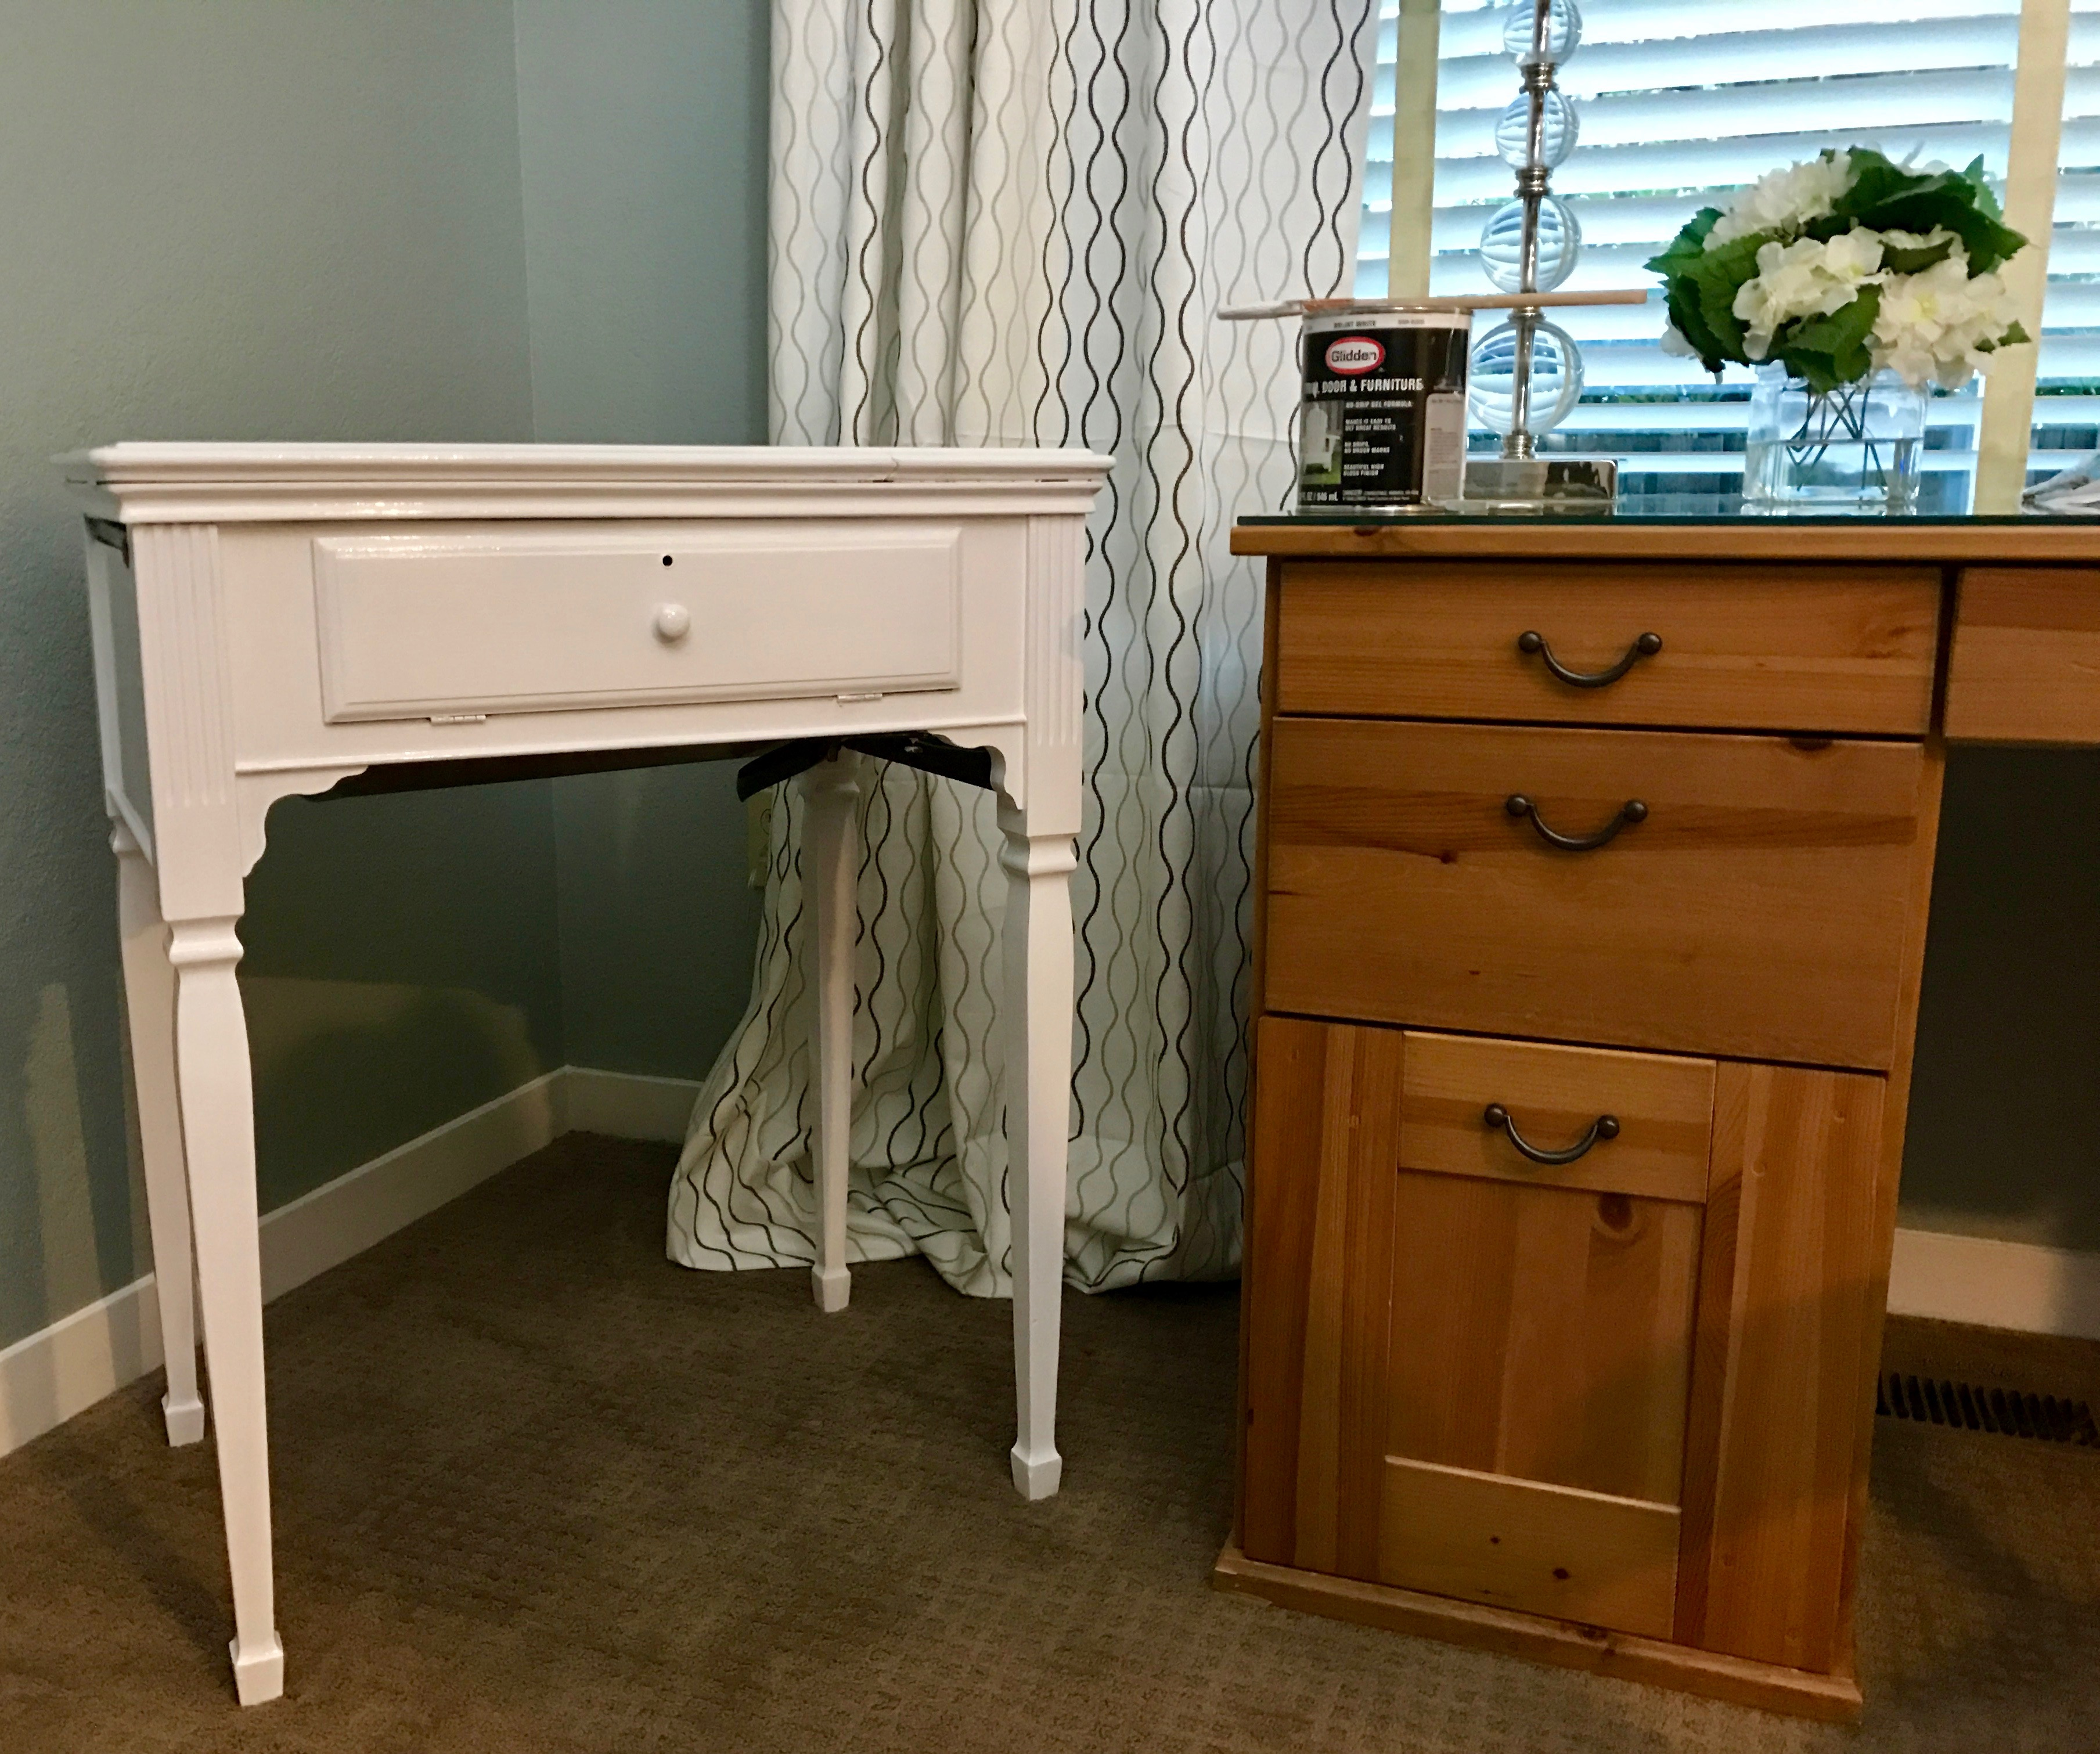 ORC: The Home Office Guest Room Week 5 – Painting the Sewing Cabinet